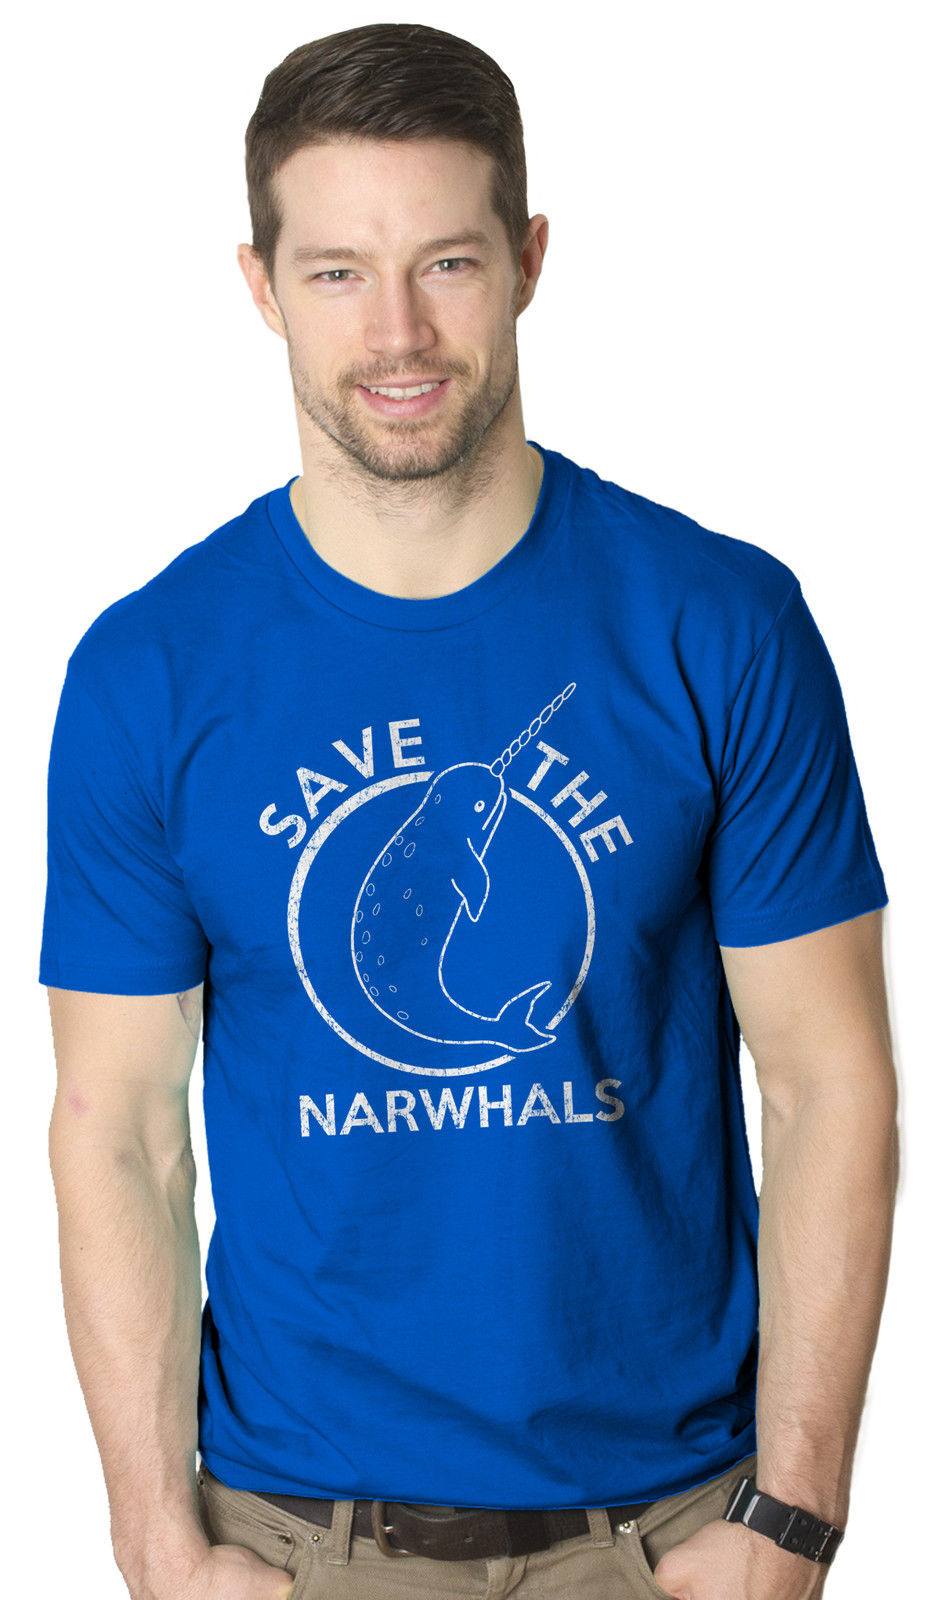 Save The Narwhals Tshirt Funny Narwhal Unicorn Shirt Harajuku Tops t shirt Fashion Classic Unique free shipping in T Shirts from Men 39 s Clothing